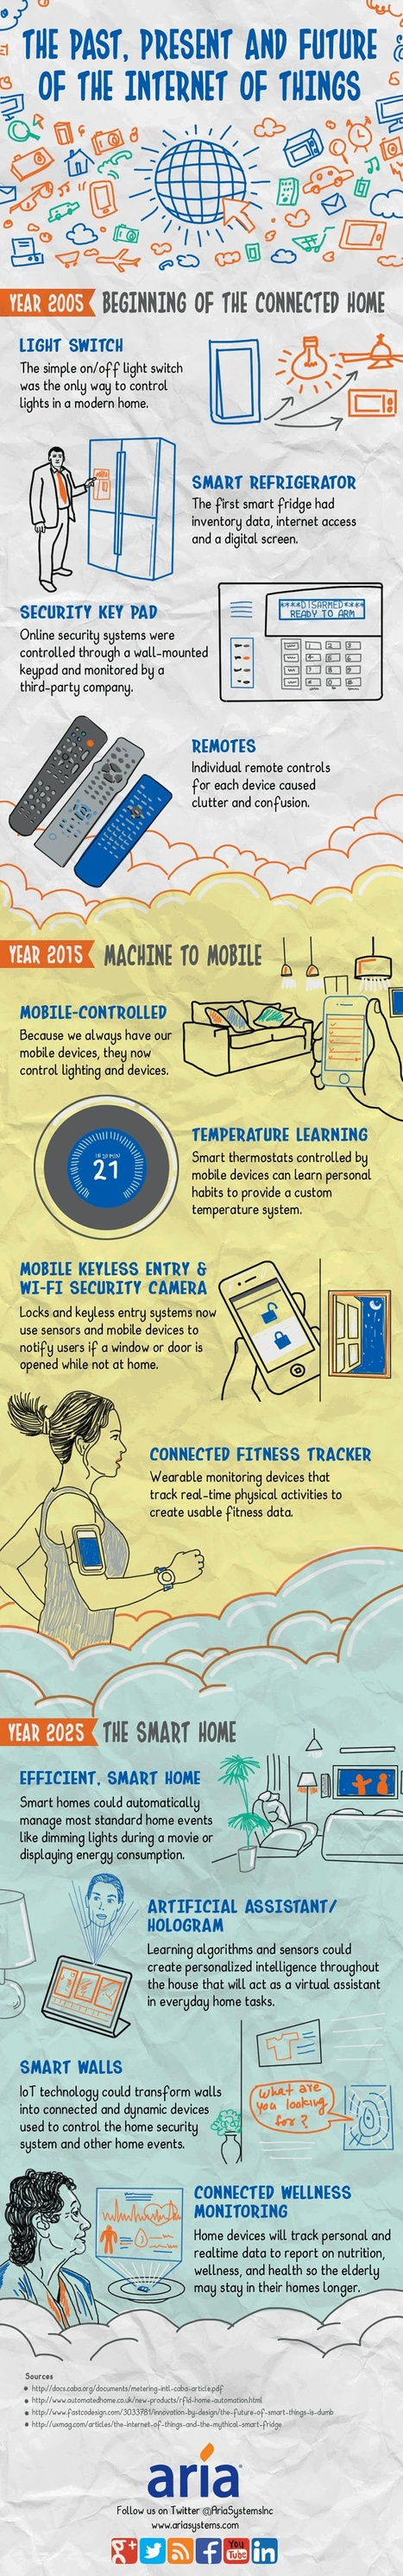 What the Internet of Things Will Look Like in 2025 #infographic | MarketingHits | Scoop.it